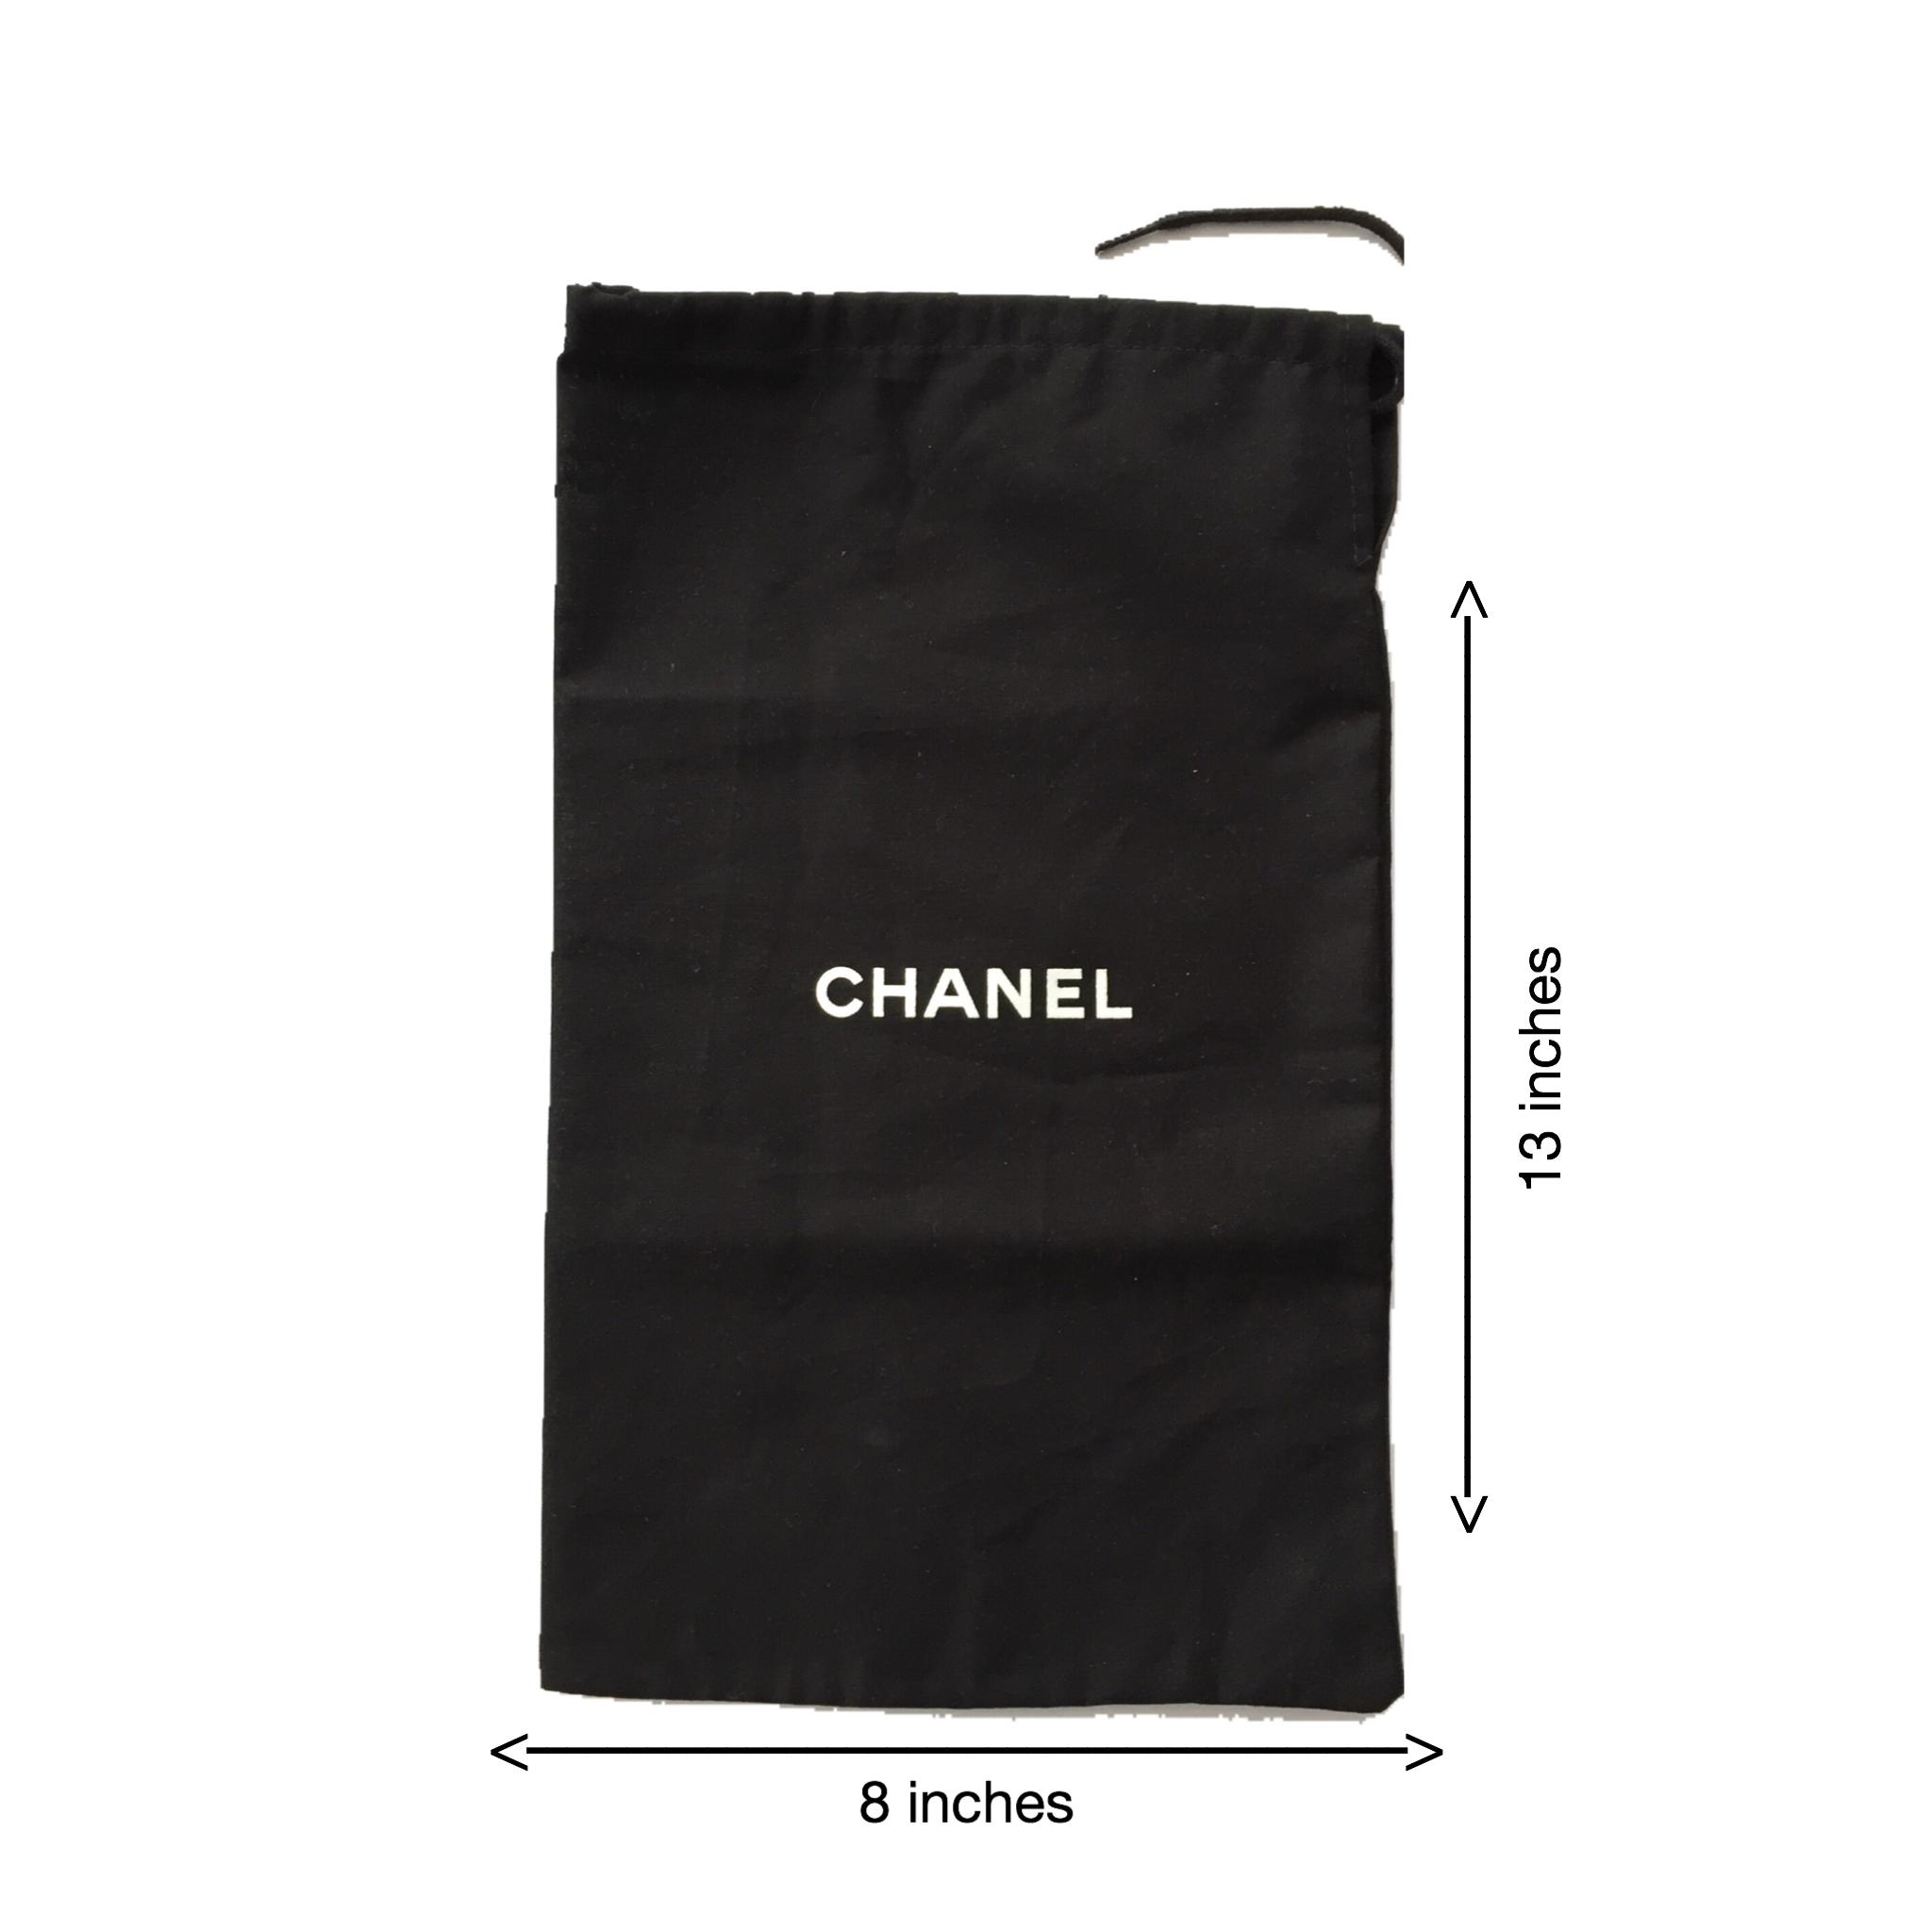 Chanel shoe dust bag